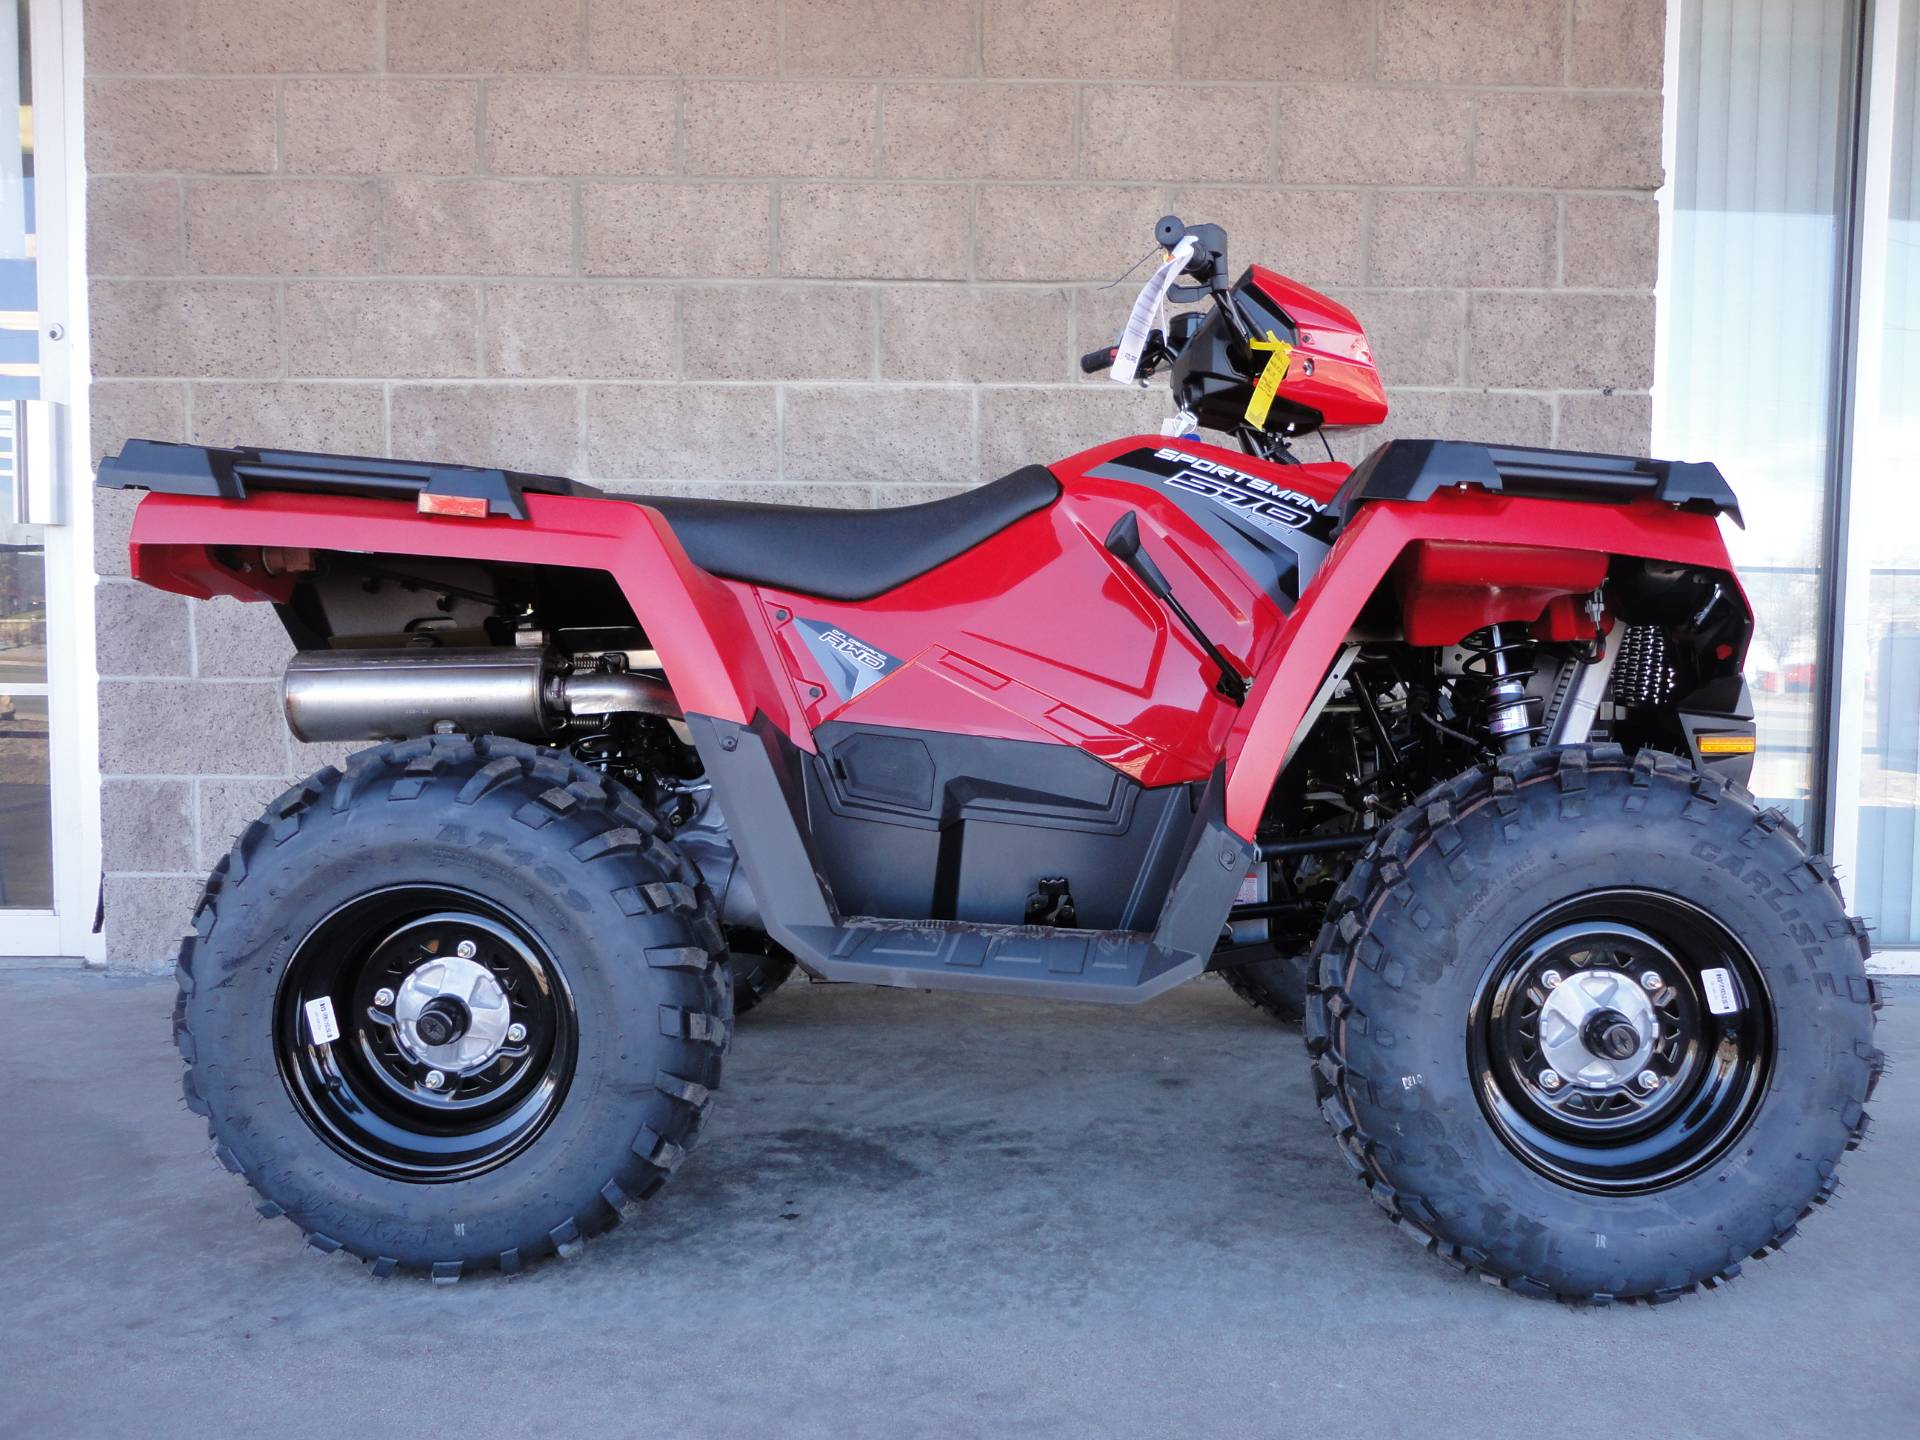 2020 Polaris Sportsman 570 in Denver, Colorado - Photo 20